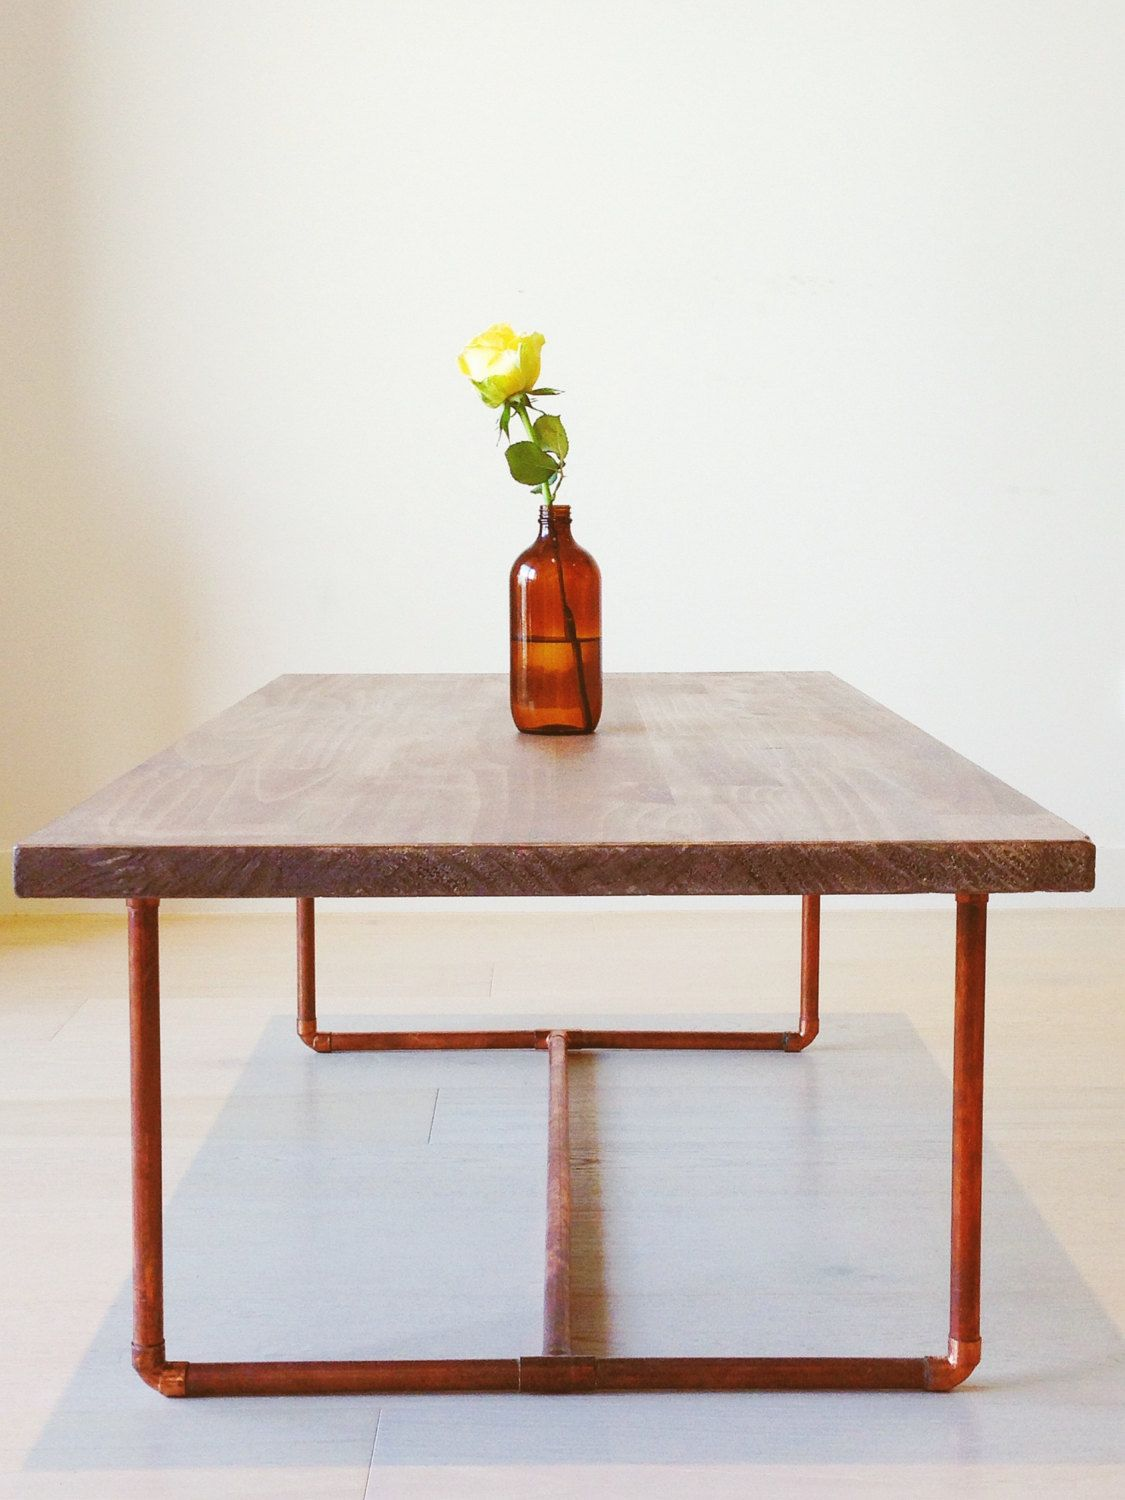 Couchtisch 150x100 Pin By John Broyles On Wood Diy Table Copper Furniture Diy